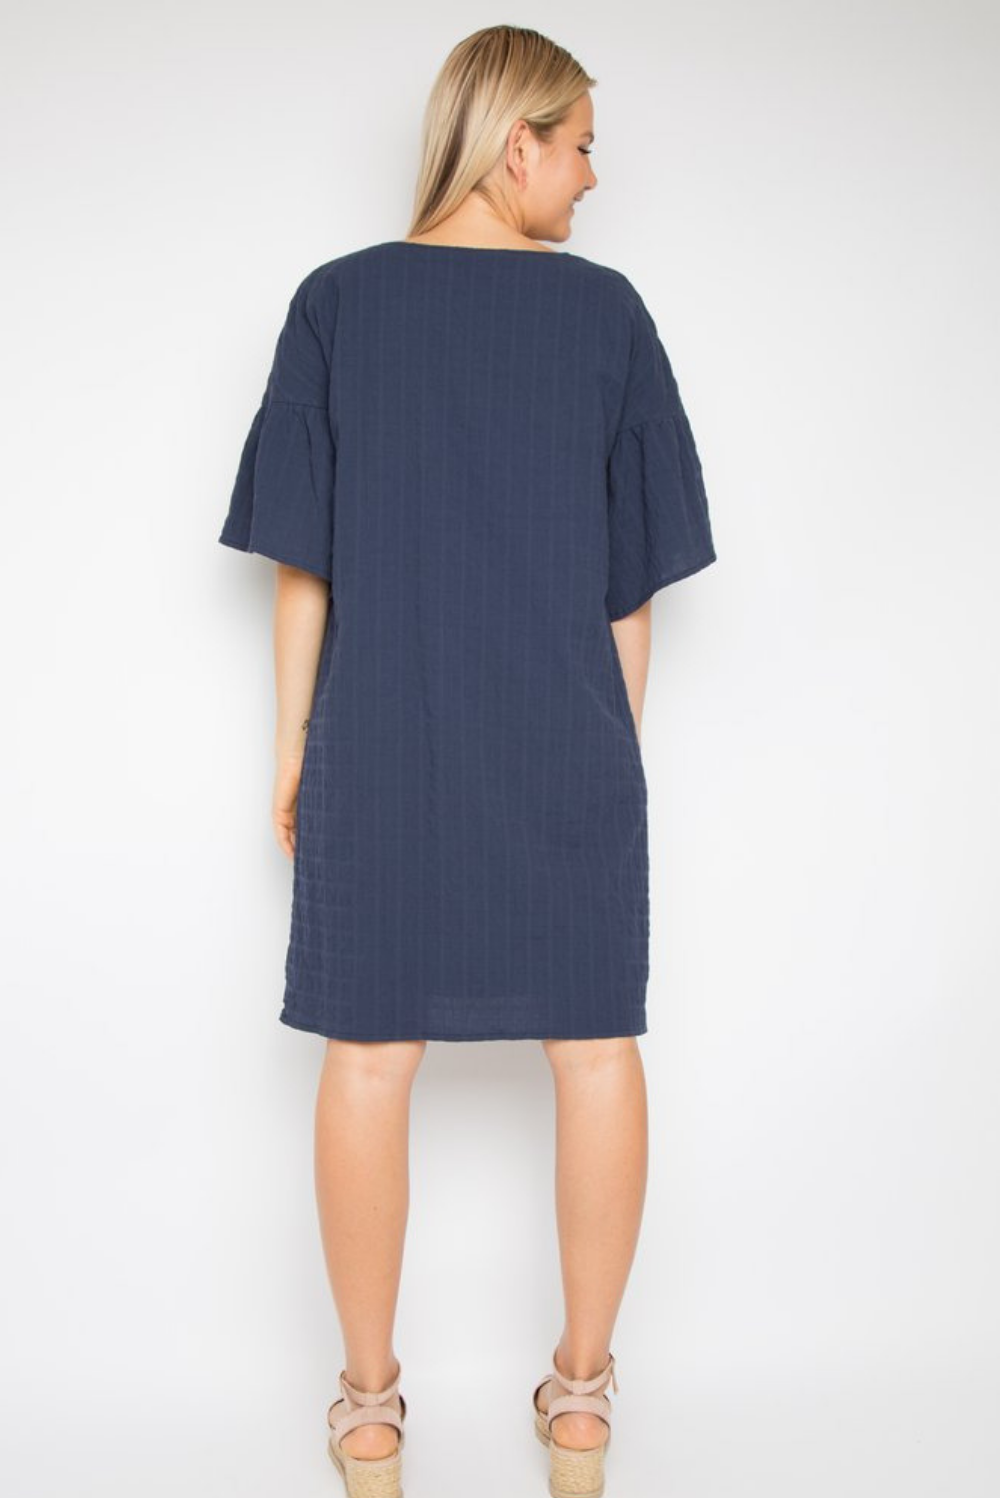 RO Corinth Dress In Navy